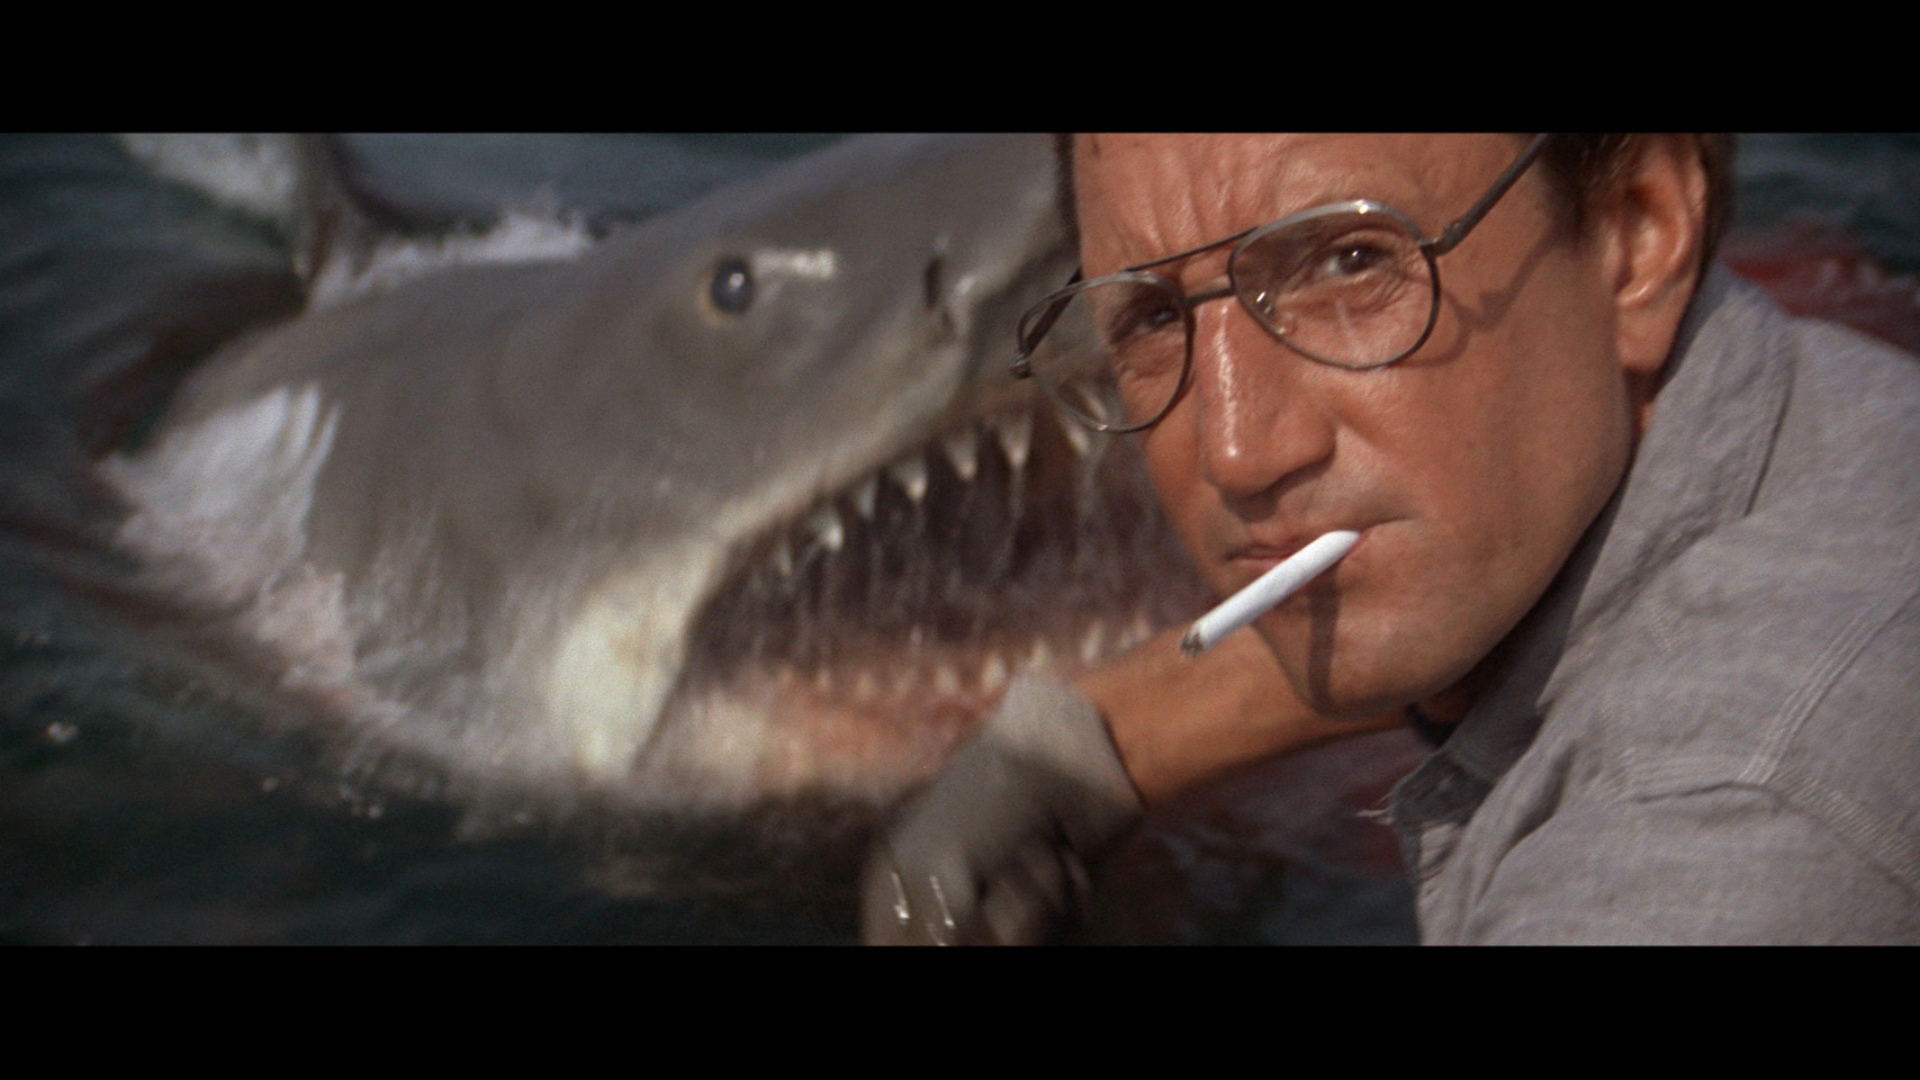 roy scheider all that jazzroy scheider all that jazz, roy scheider height, roy scheider imdb, roy scheider family guy, roy scheider, roy scheider jaws, roy scheider marathon man, roy scheider movies, roy scheider funeral, roy scheider net worth, roy scheider cause of death, roy scheider tot, roy scheider mort, roy scheider jaws 3, roy scheider filmweb, roy scheider movies list, roy scheider grave, roy scheider biography, roy scheider hospital, roy scheider seaquest